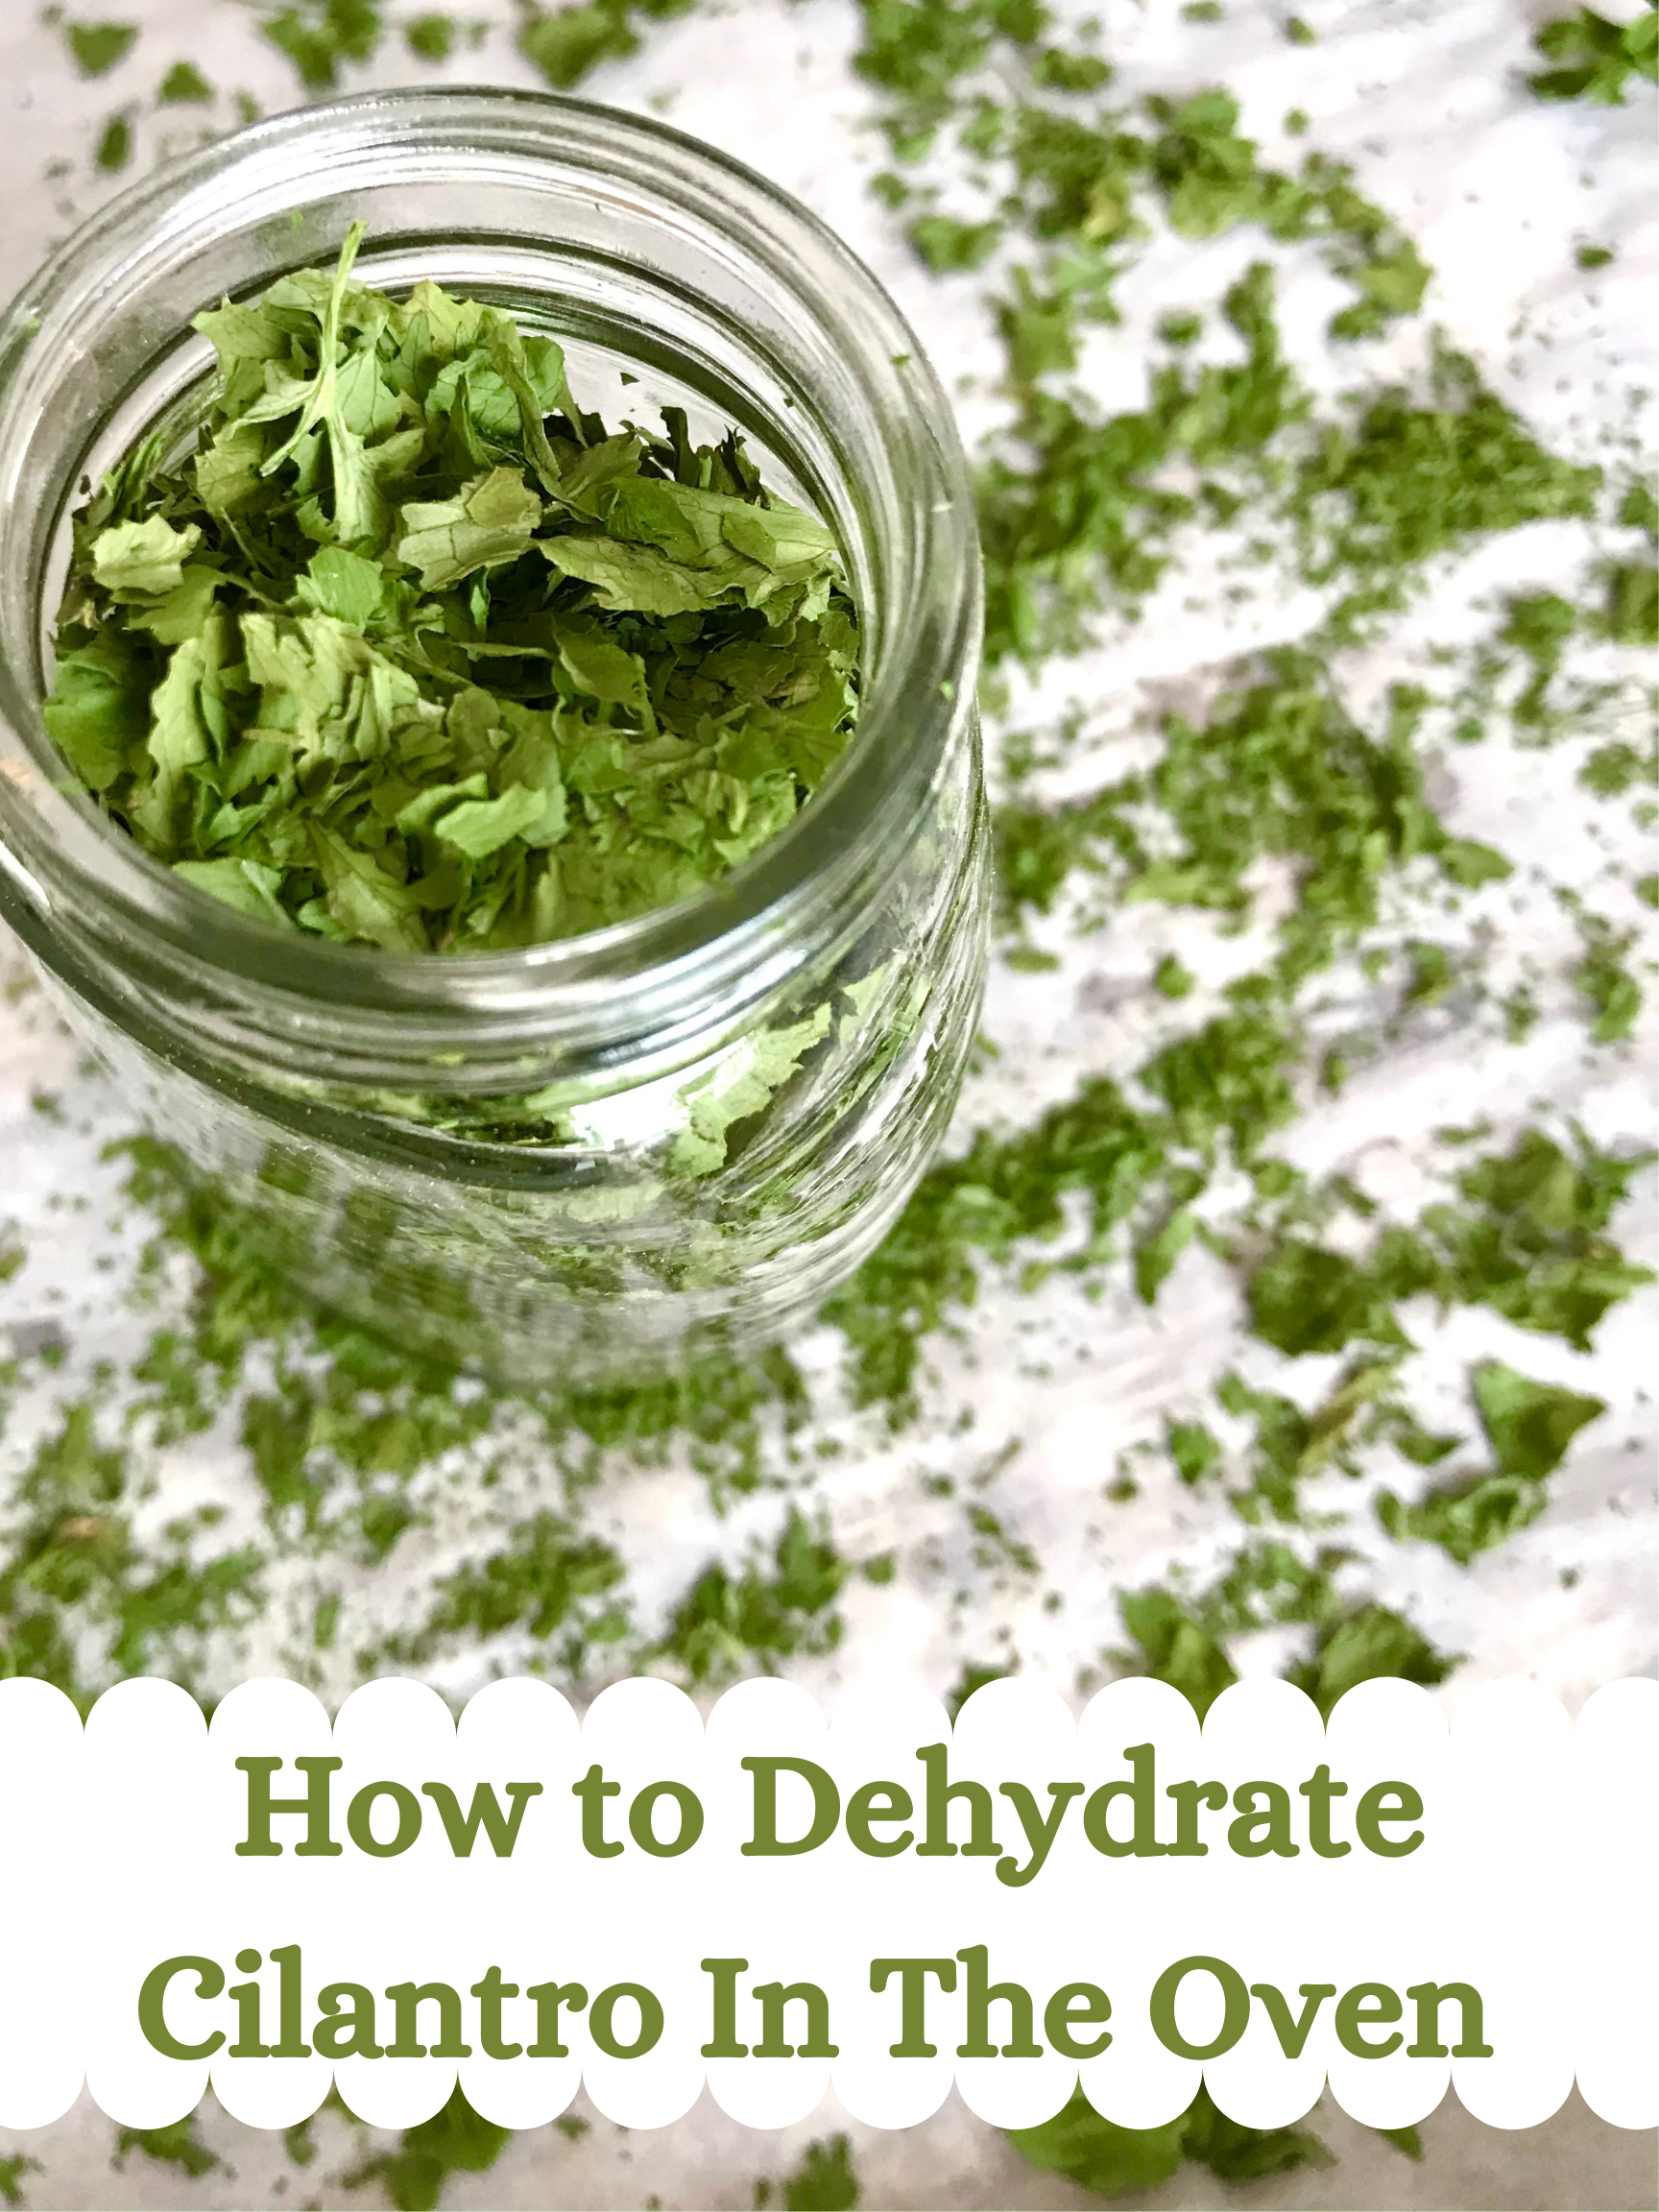 How to Dehydrate Cilantro In The Oven